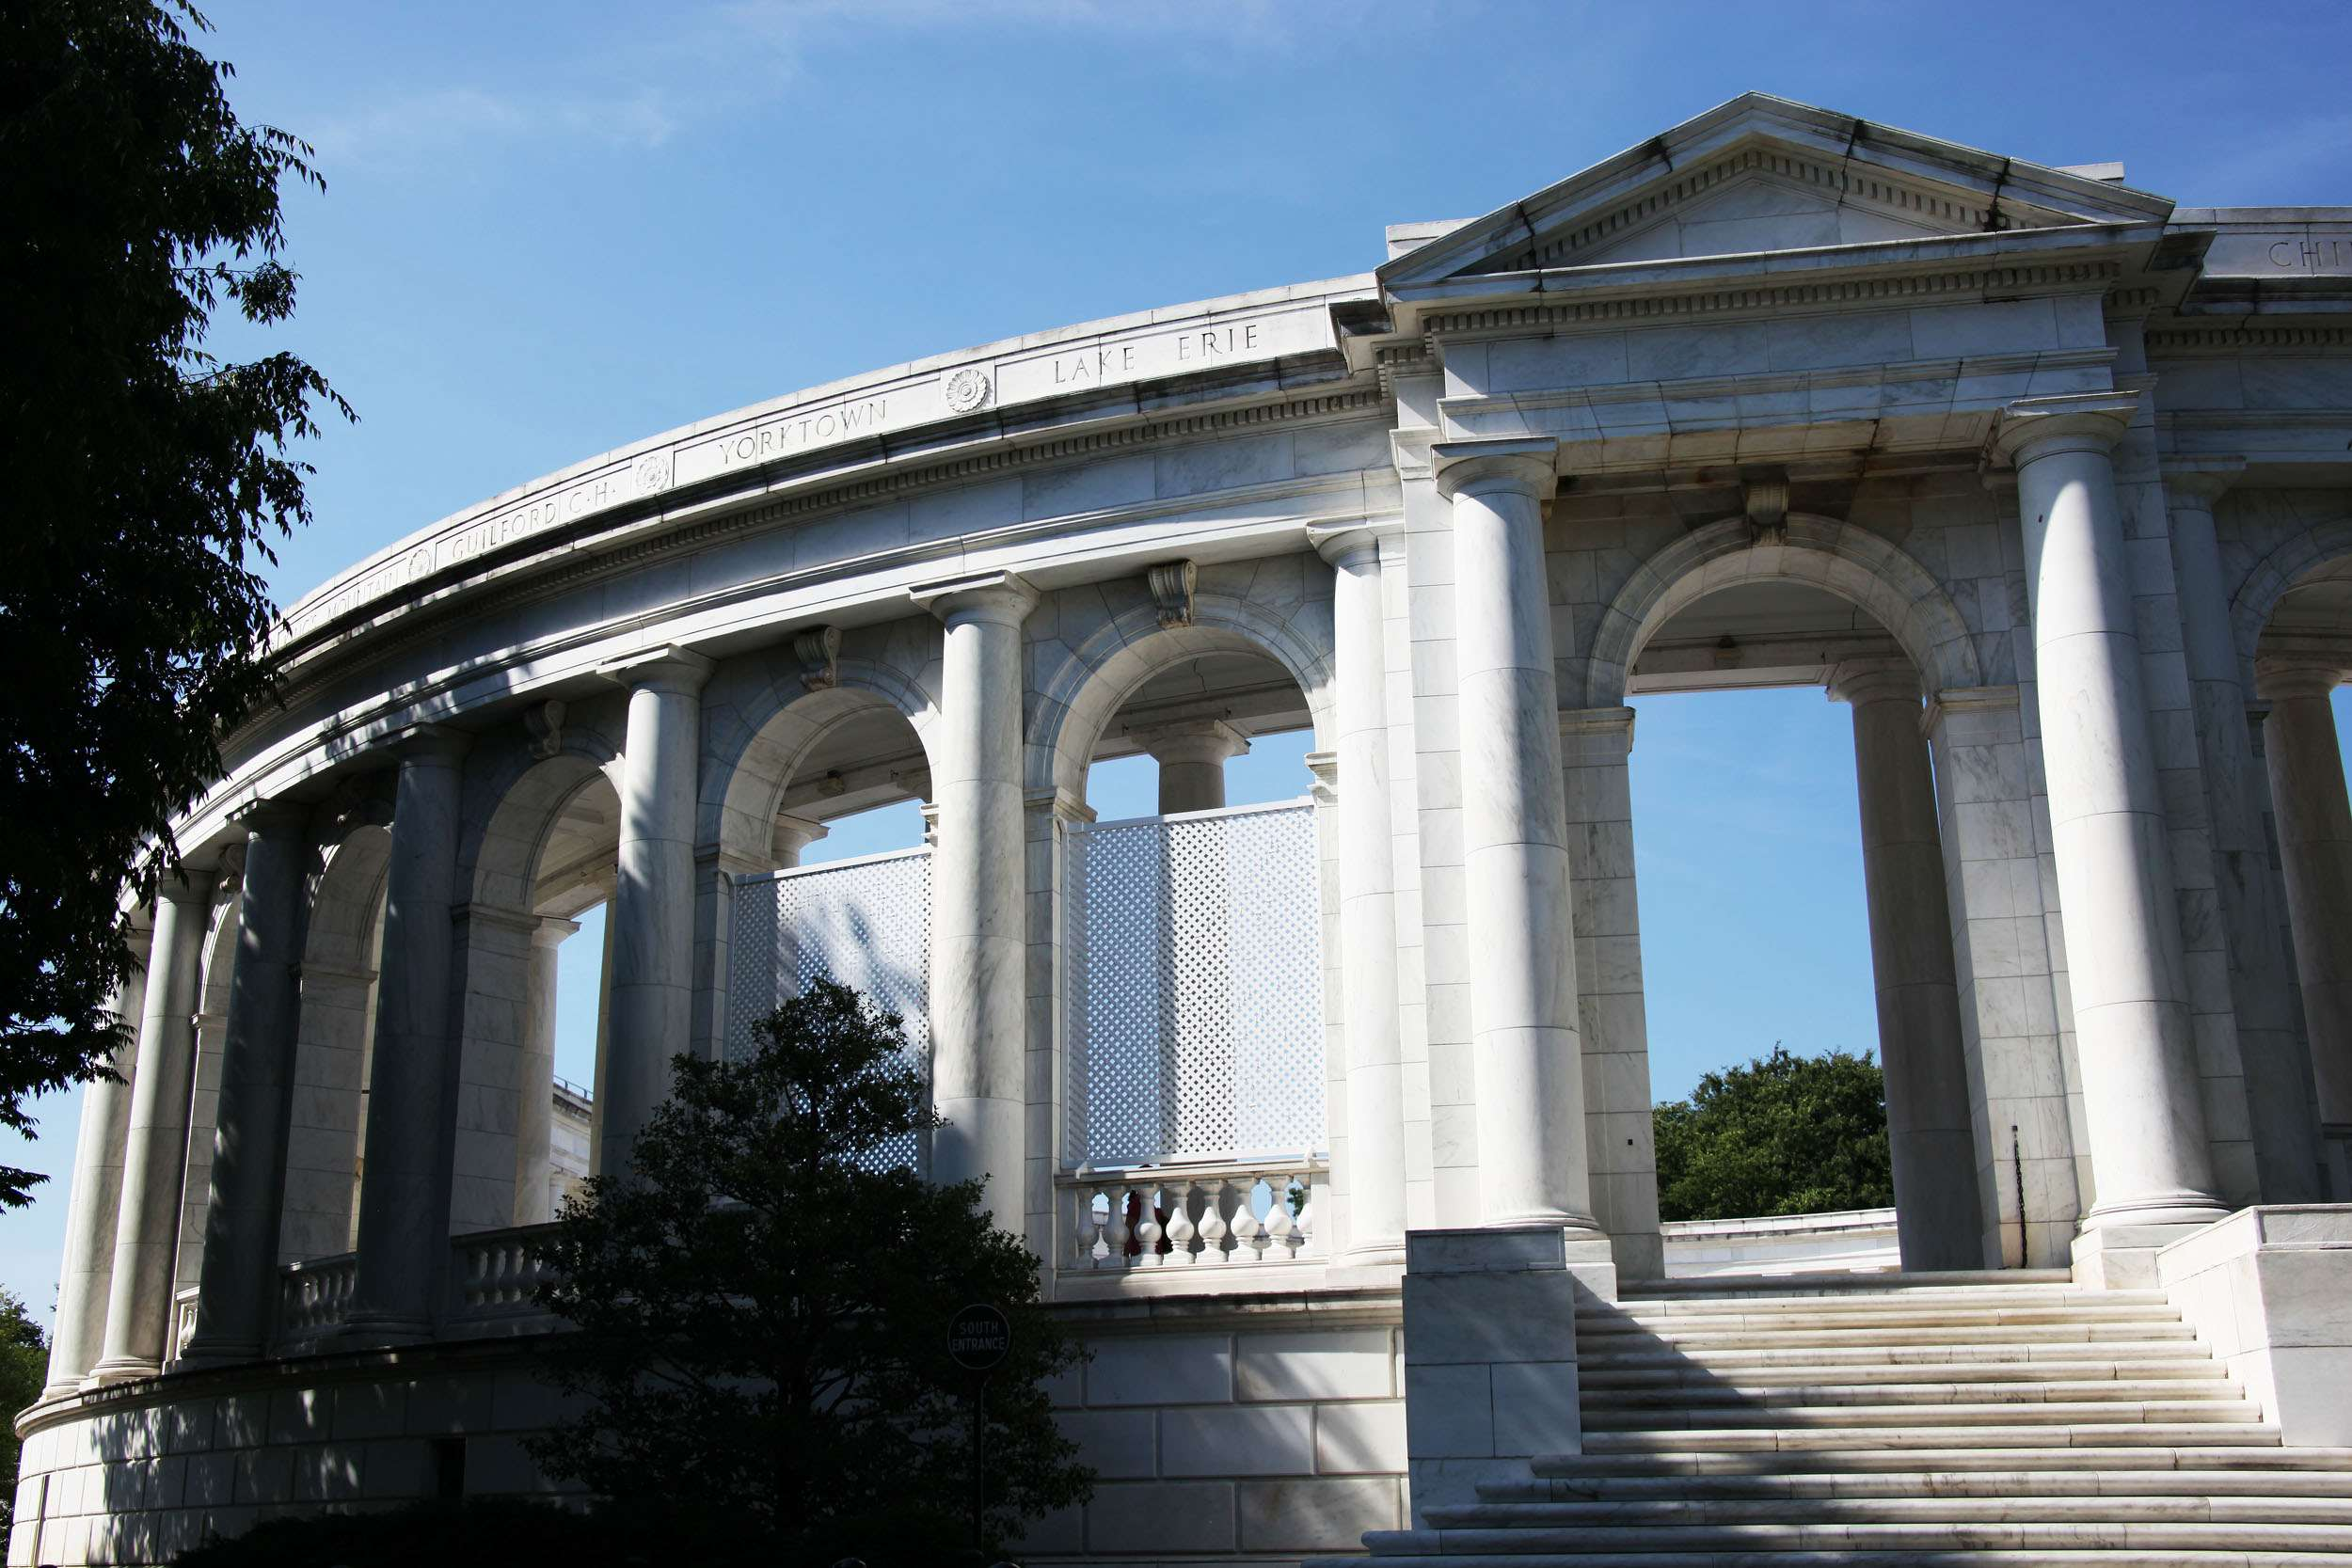 memorial amphitheater3 The Memorial Amphitheater at Arlington National Cemetery